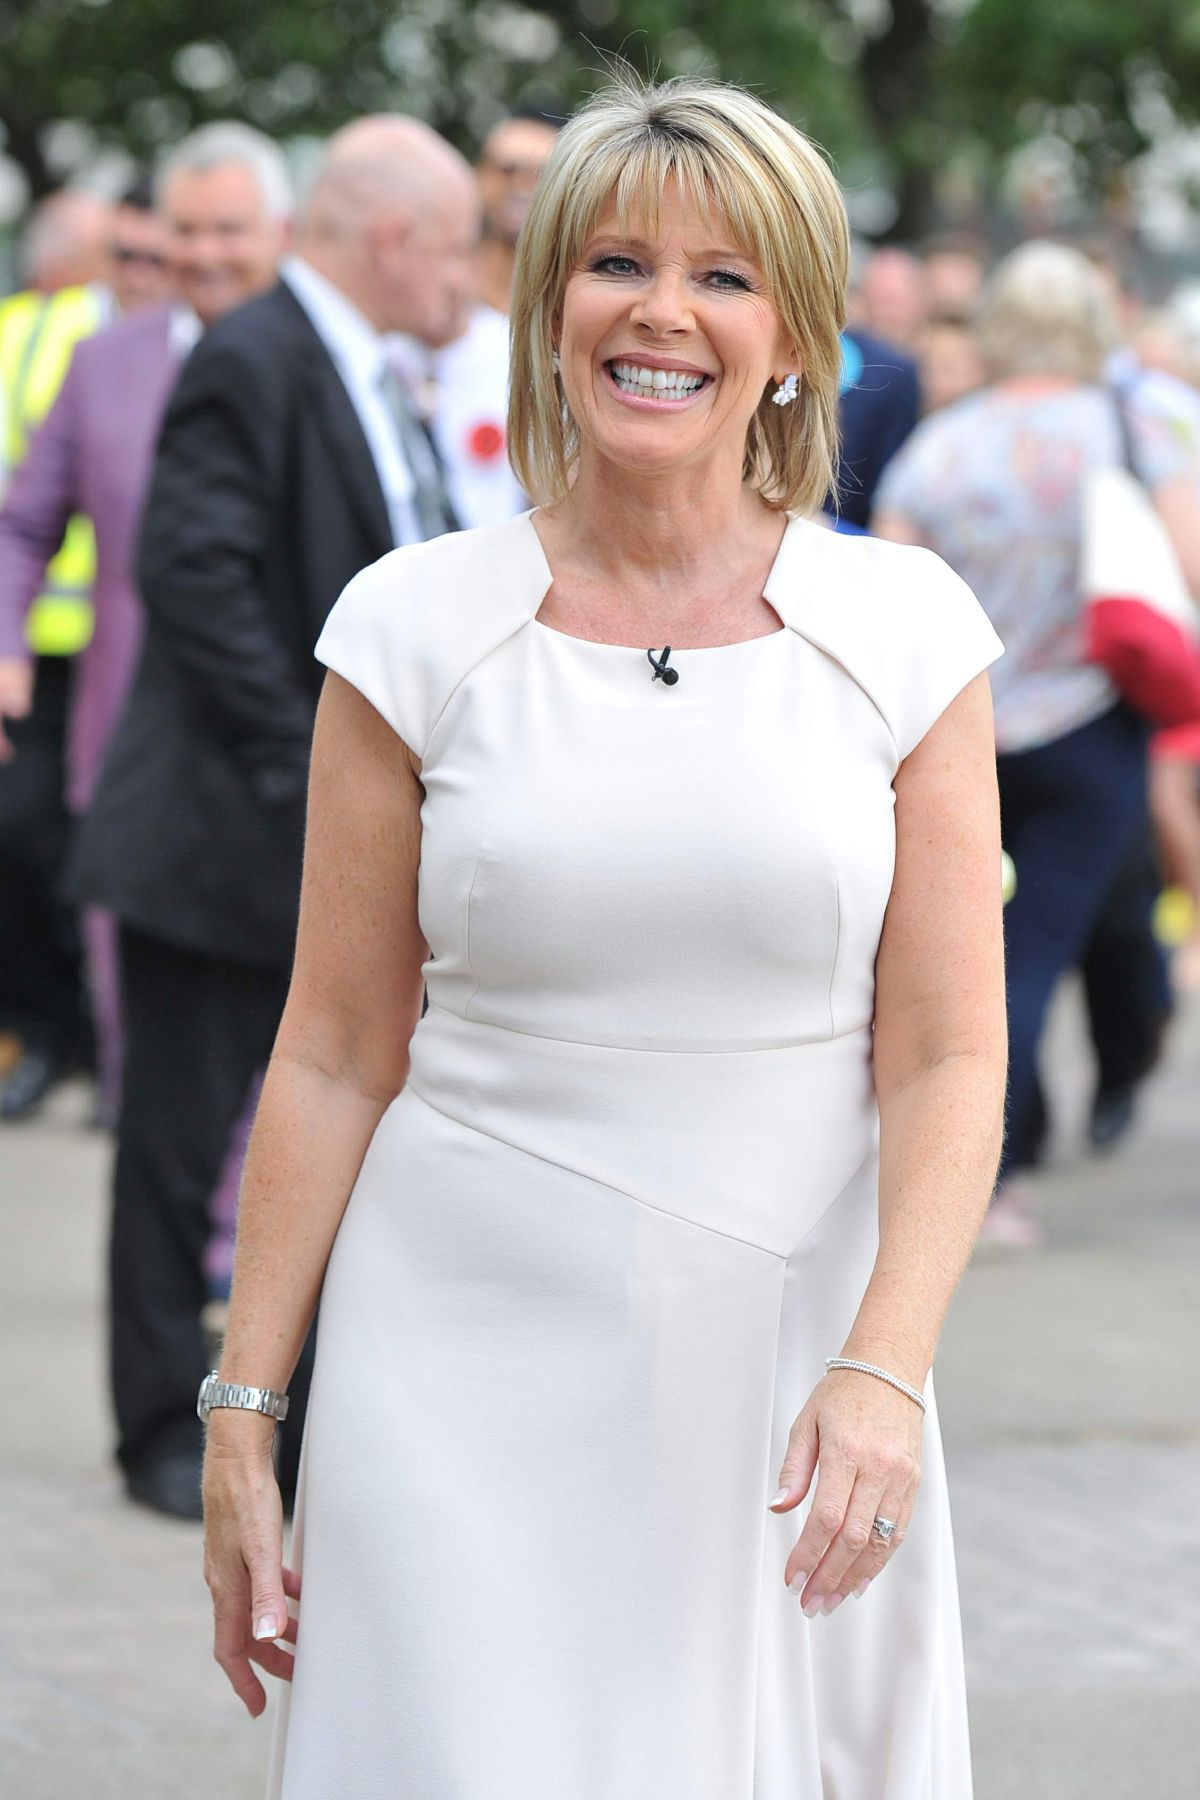 RUTH LANGSFORD at This Morning Show in London 07/25/2016